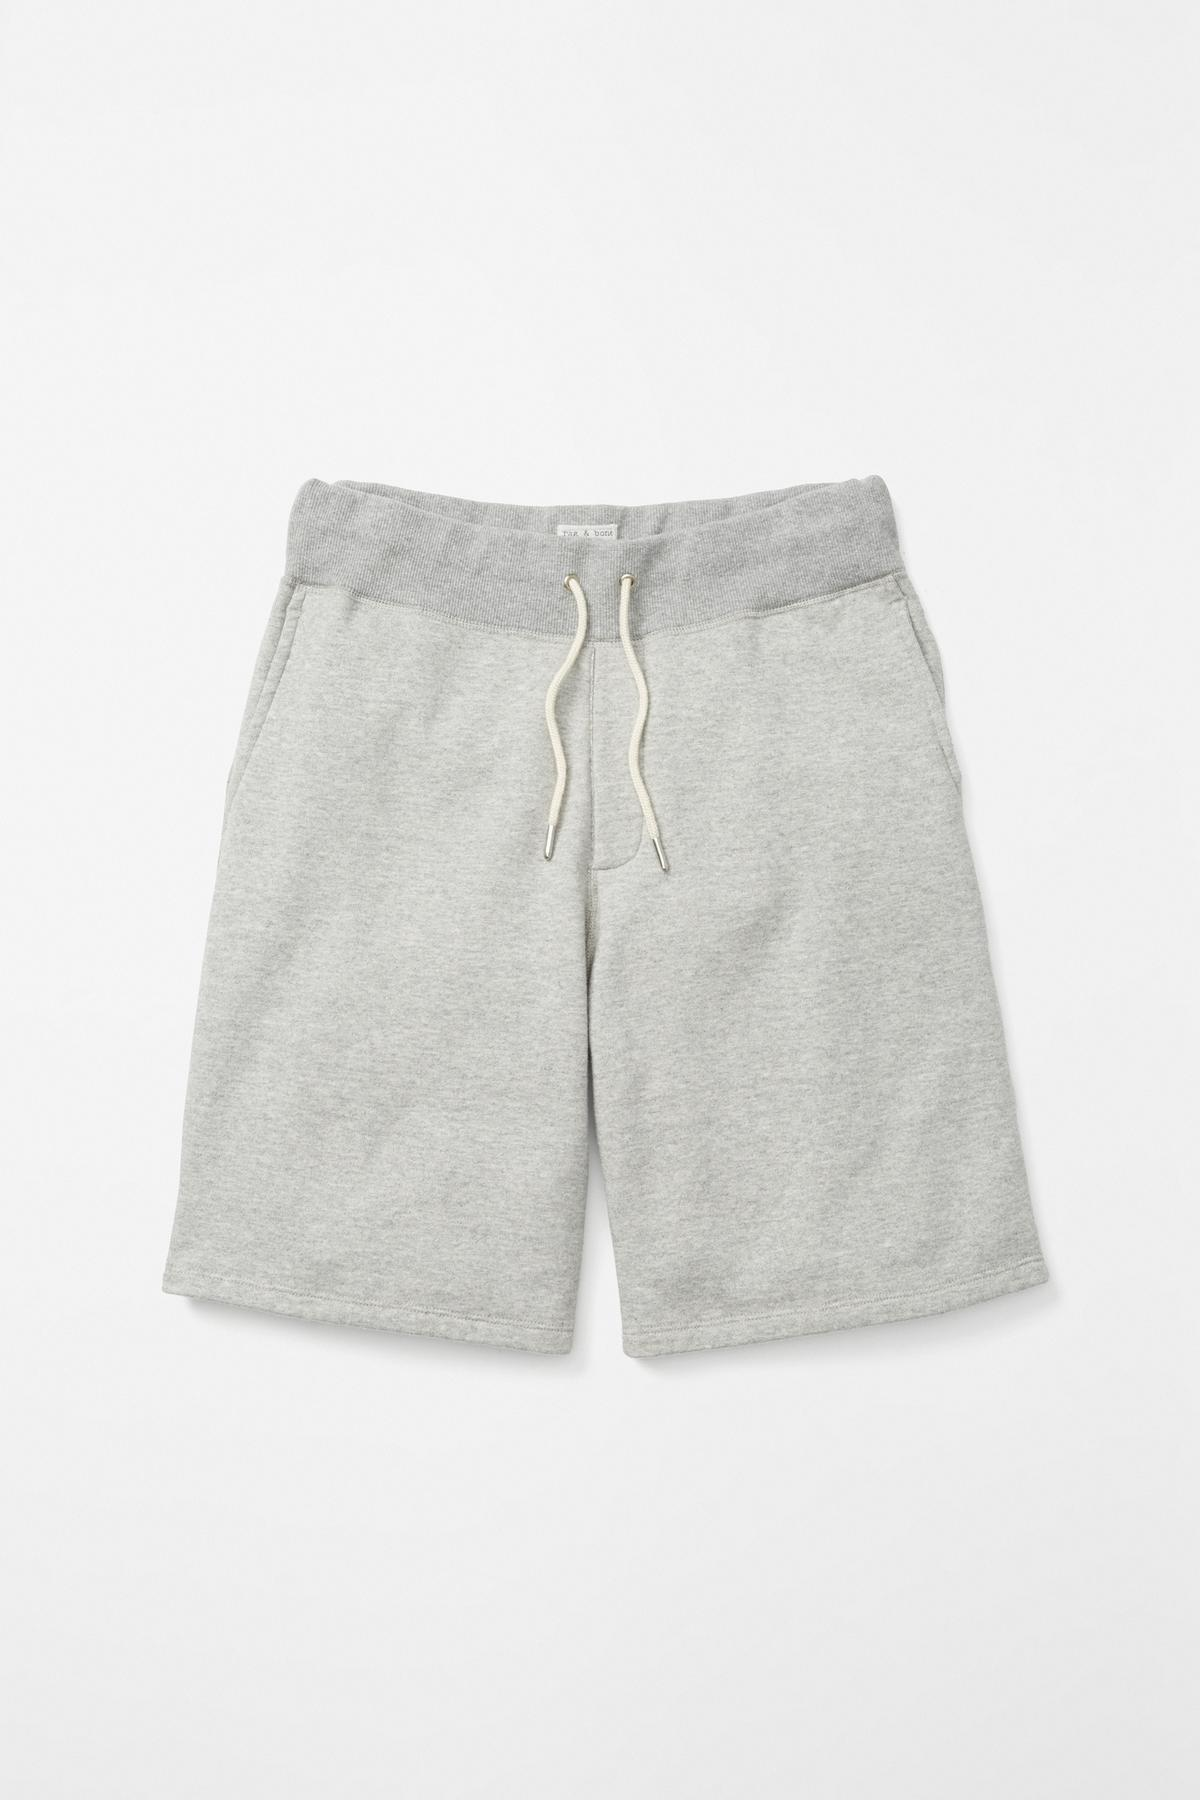 RAG & BONE STANDARD ISSUE SWEATSHORT